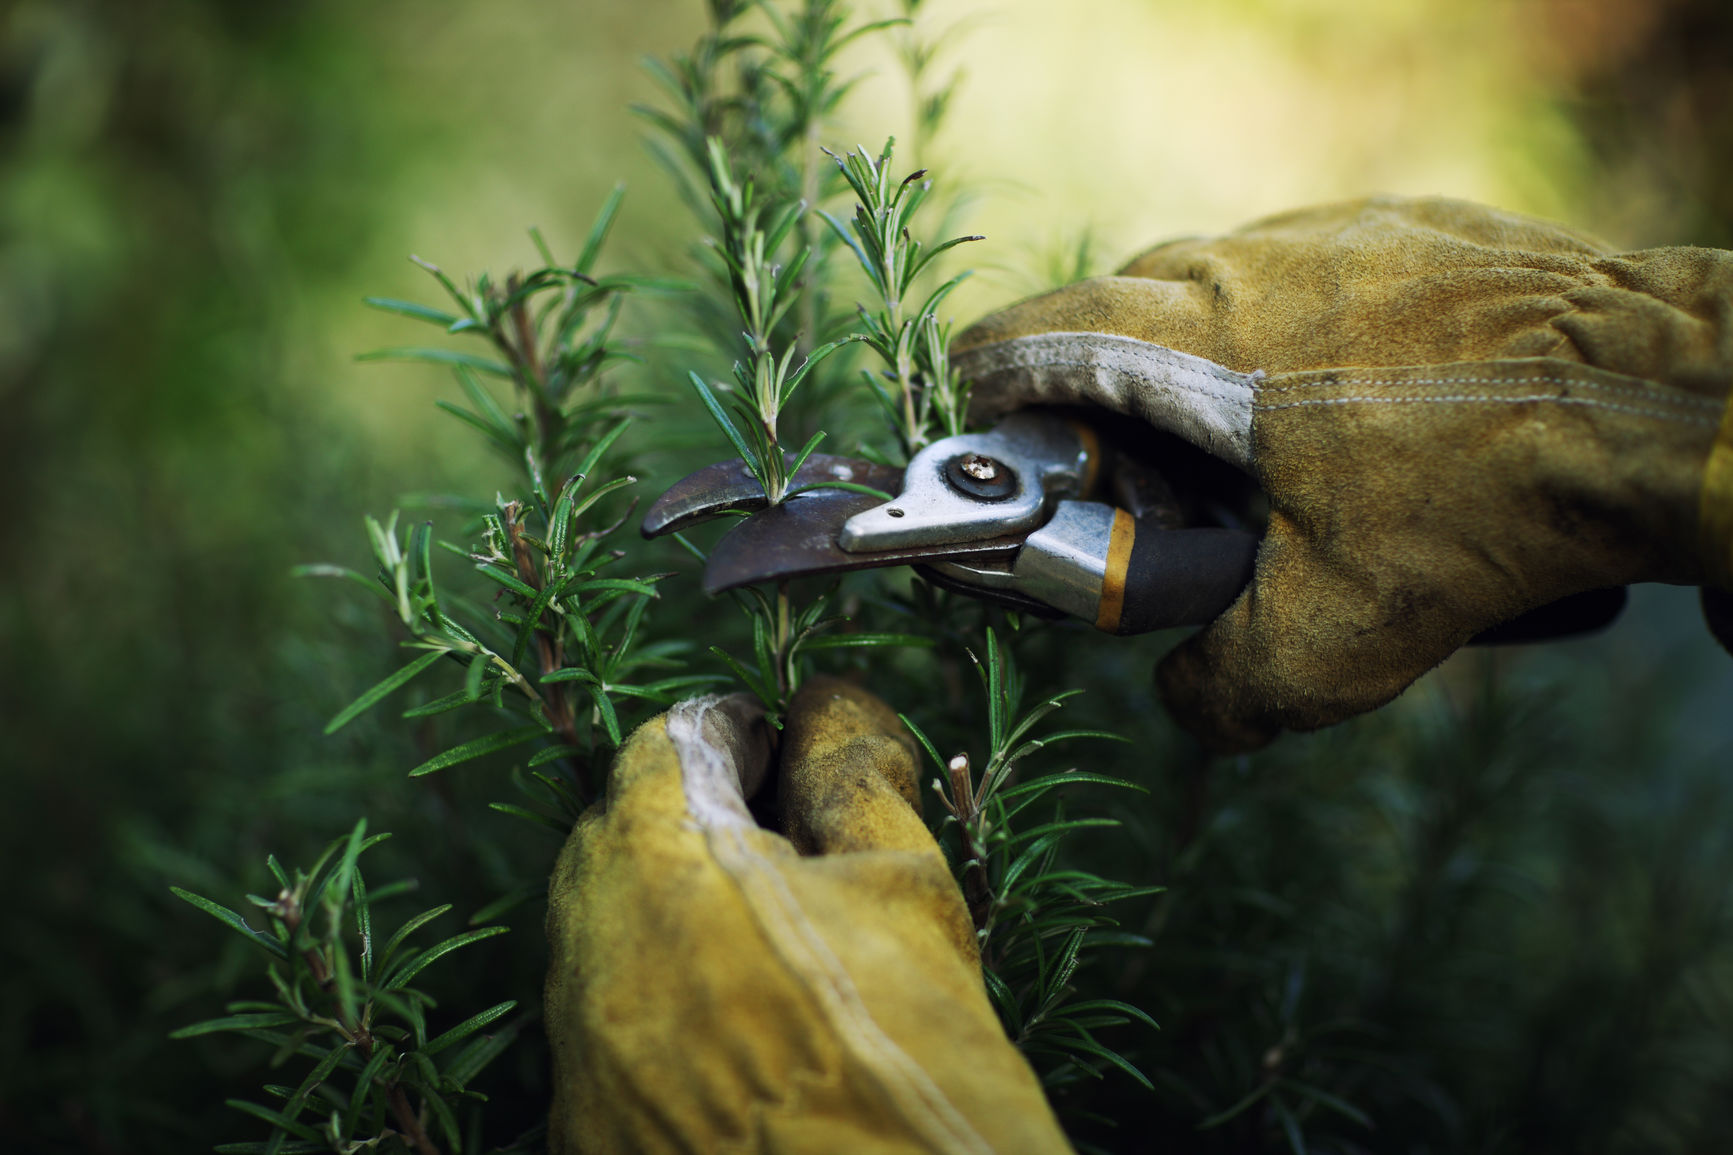 Close up shot of a gardeners hands pruning a rosemary bush.